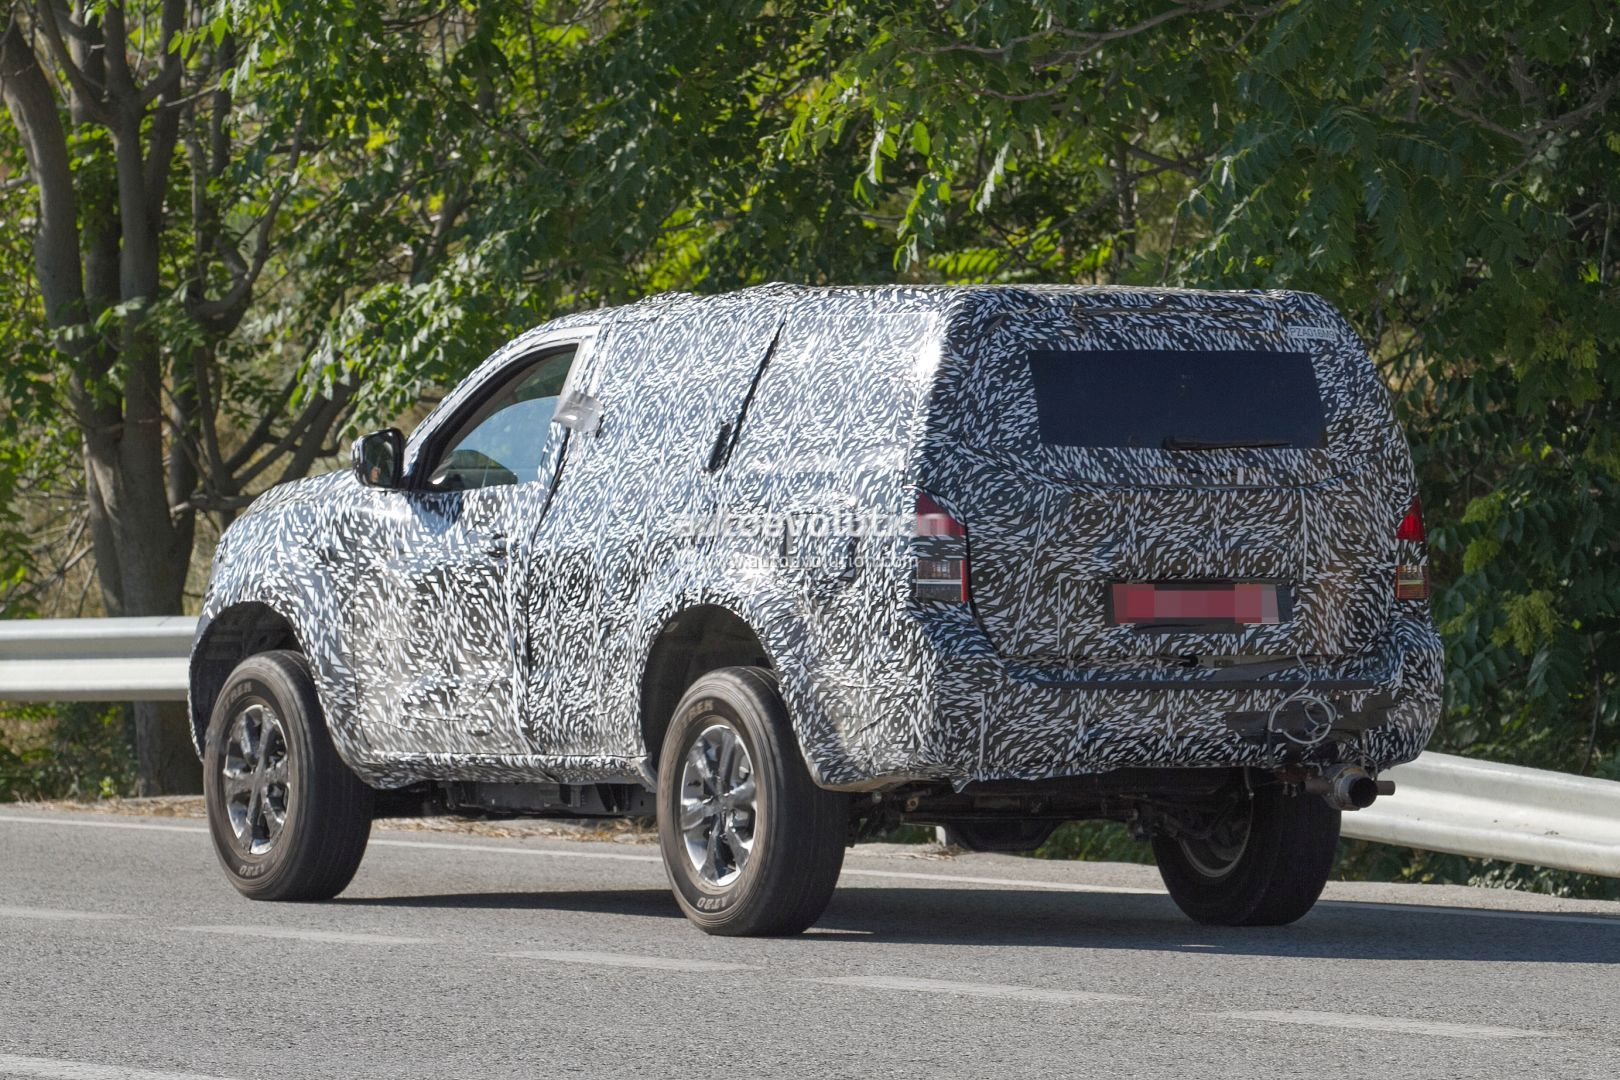 Next Gen 2019 Nissan Pathfinder Spied Shows Radical Front